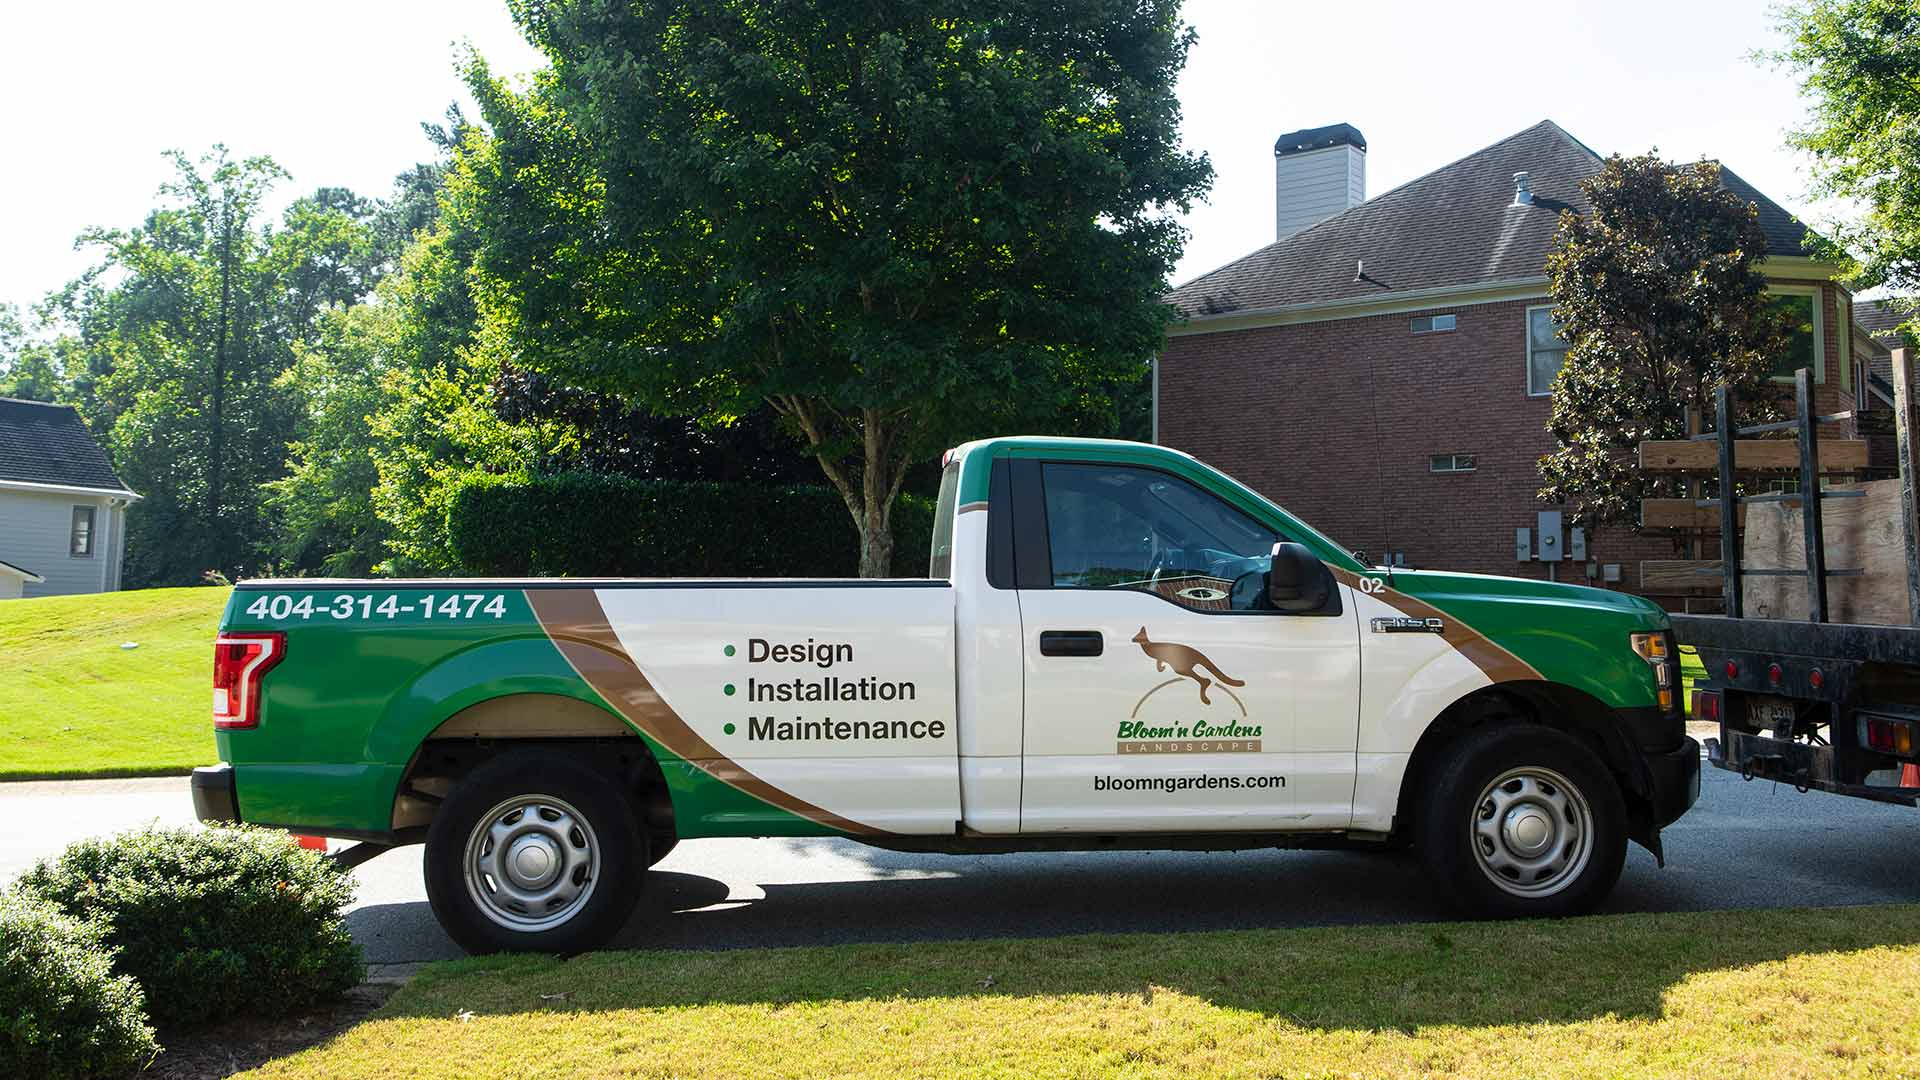 A Bloom'n Gardens Landscape work truck after completing a landscaping project in Atlanta, GA.